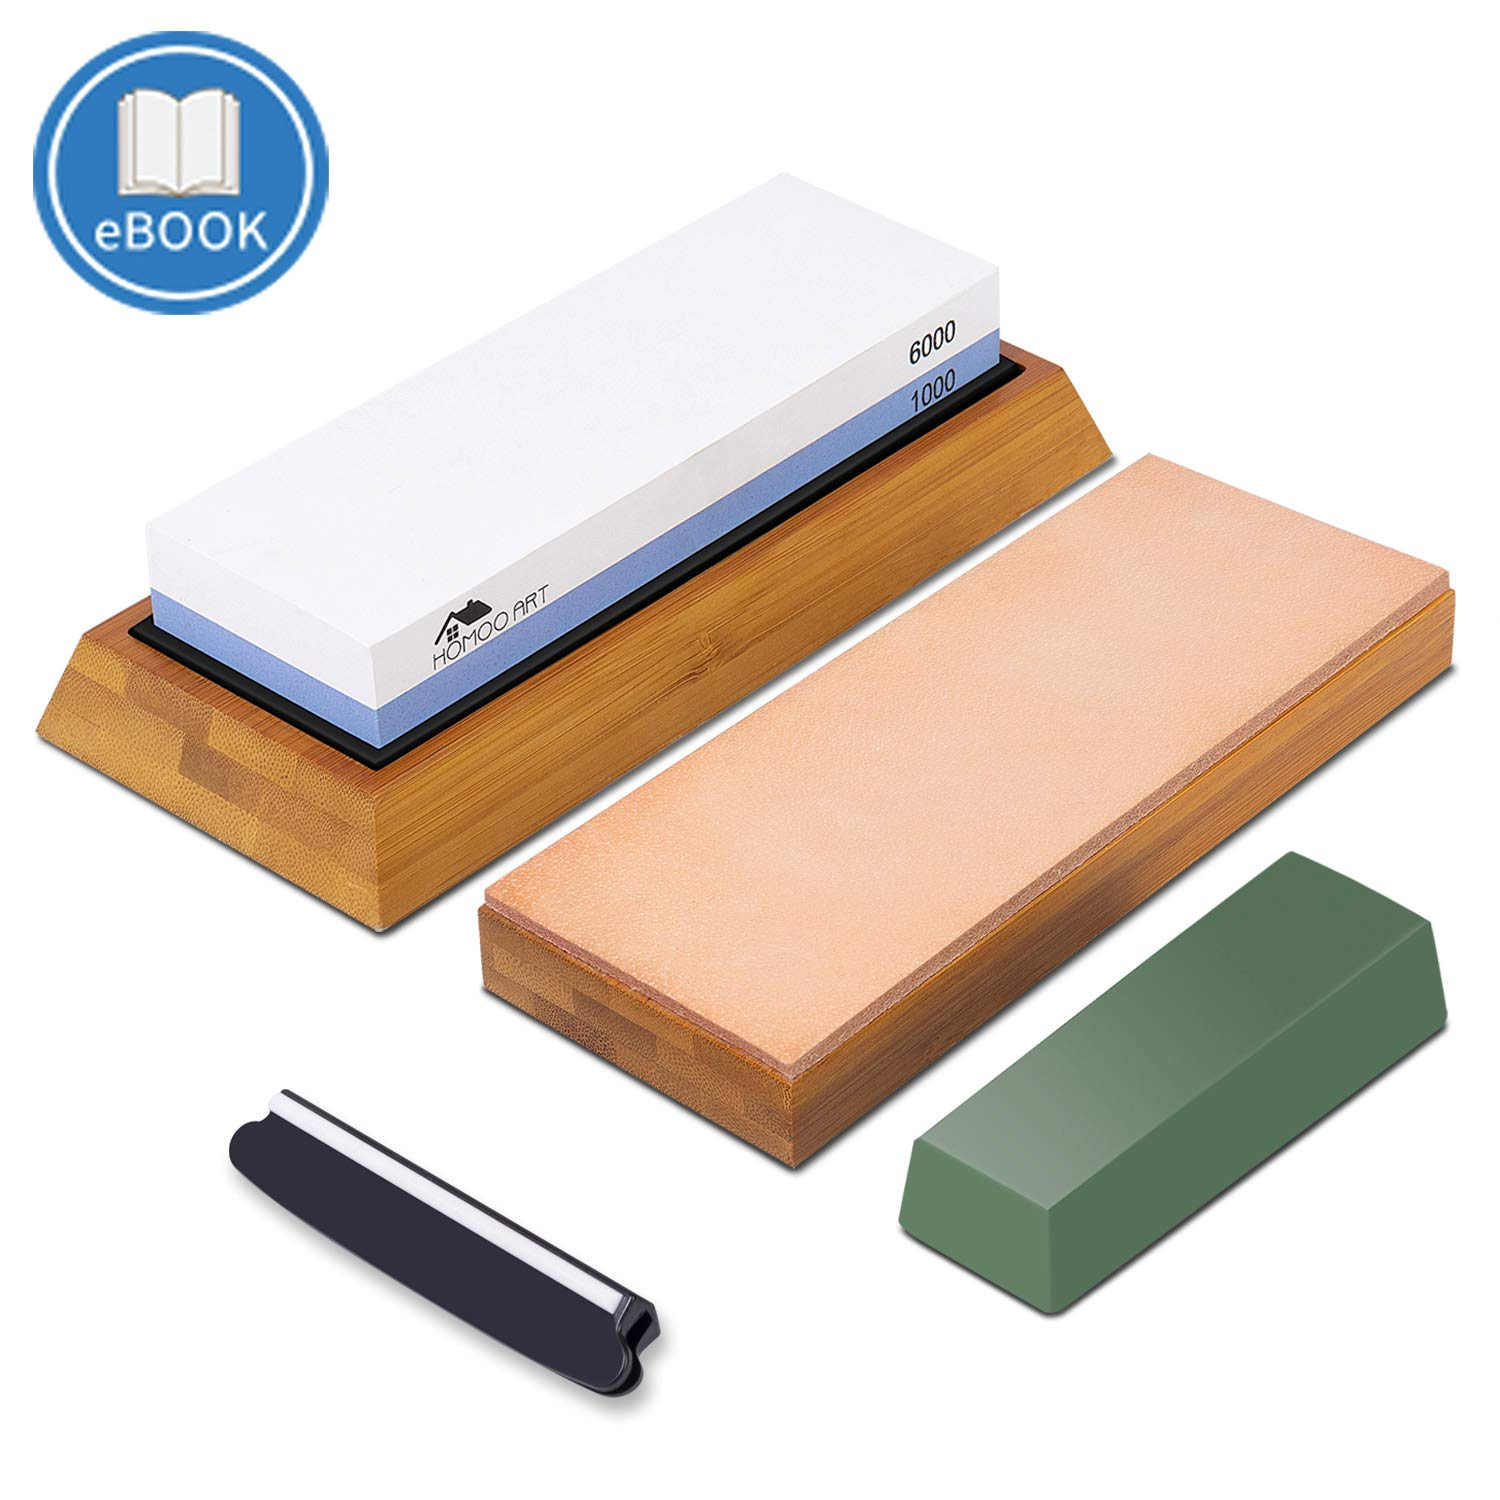 Premium Whetstone Knife Sharpening Stone and Leather Honing Strop Set :#1000/6000 Grit Water Stone/Wet Stone, Angle Guide | Knife Stropping Block with Polishing Compound, Bamboo Base -with eBook